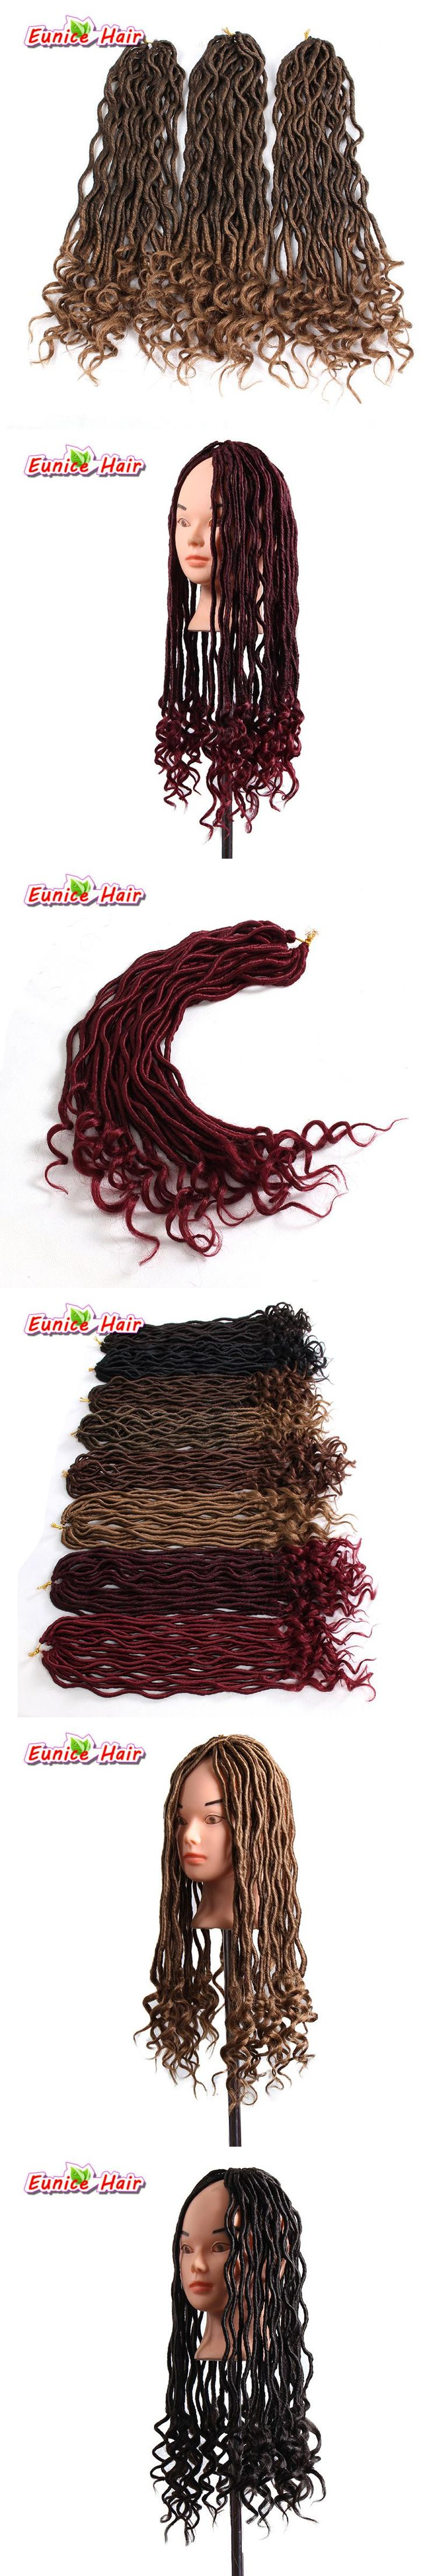 24 Roots Faux Locs Curly Crochet Hair 20 inch Crochet Braids Synthetic Hair Extensions For Black Women 3 packs/Lot